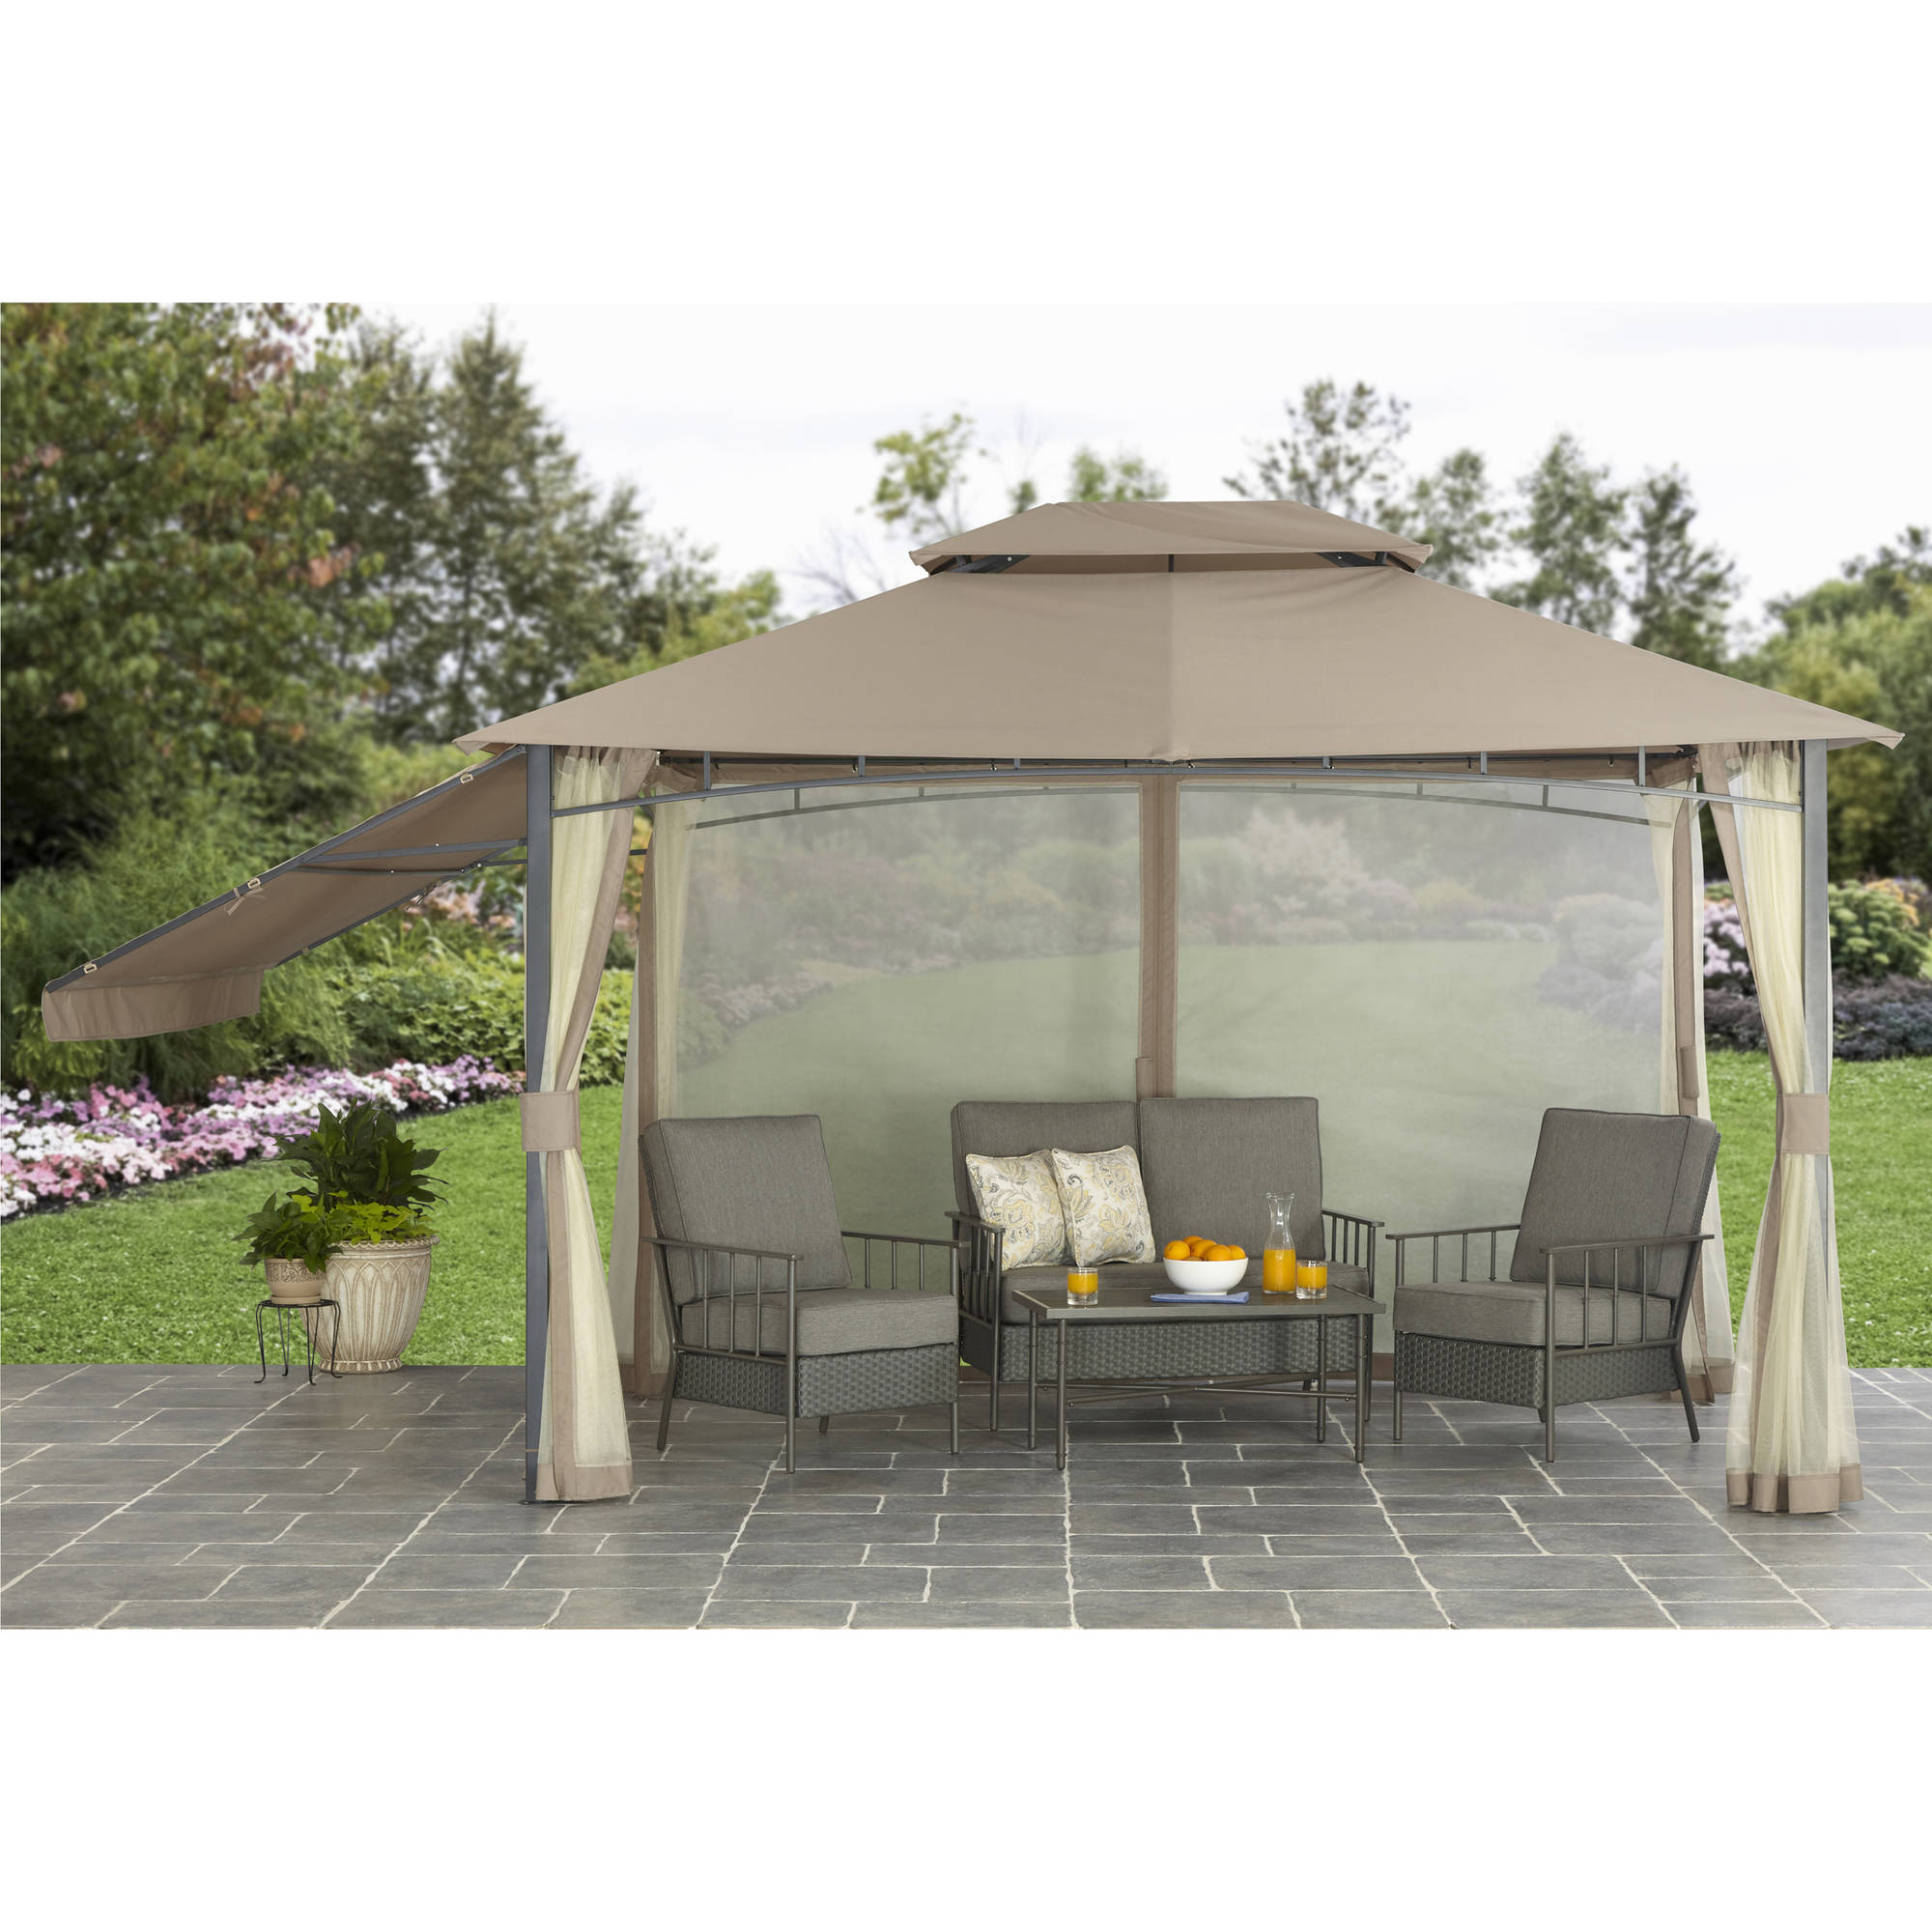 Better Homes and Garden Parker Creek 10' x 12' Cabin Style Gazebo with Adjustable Side by